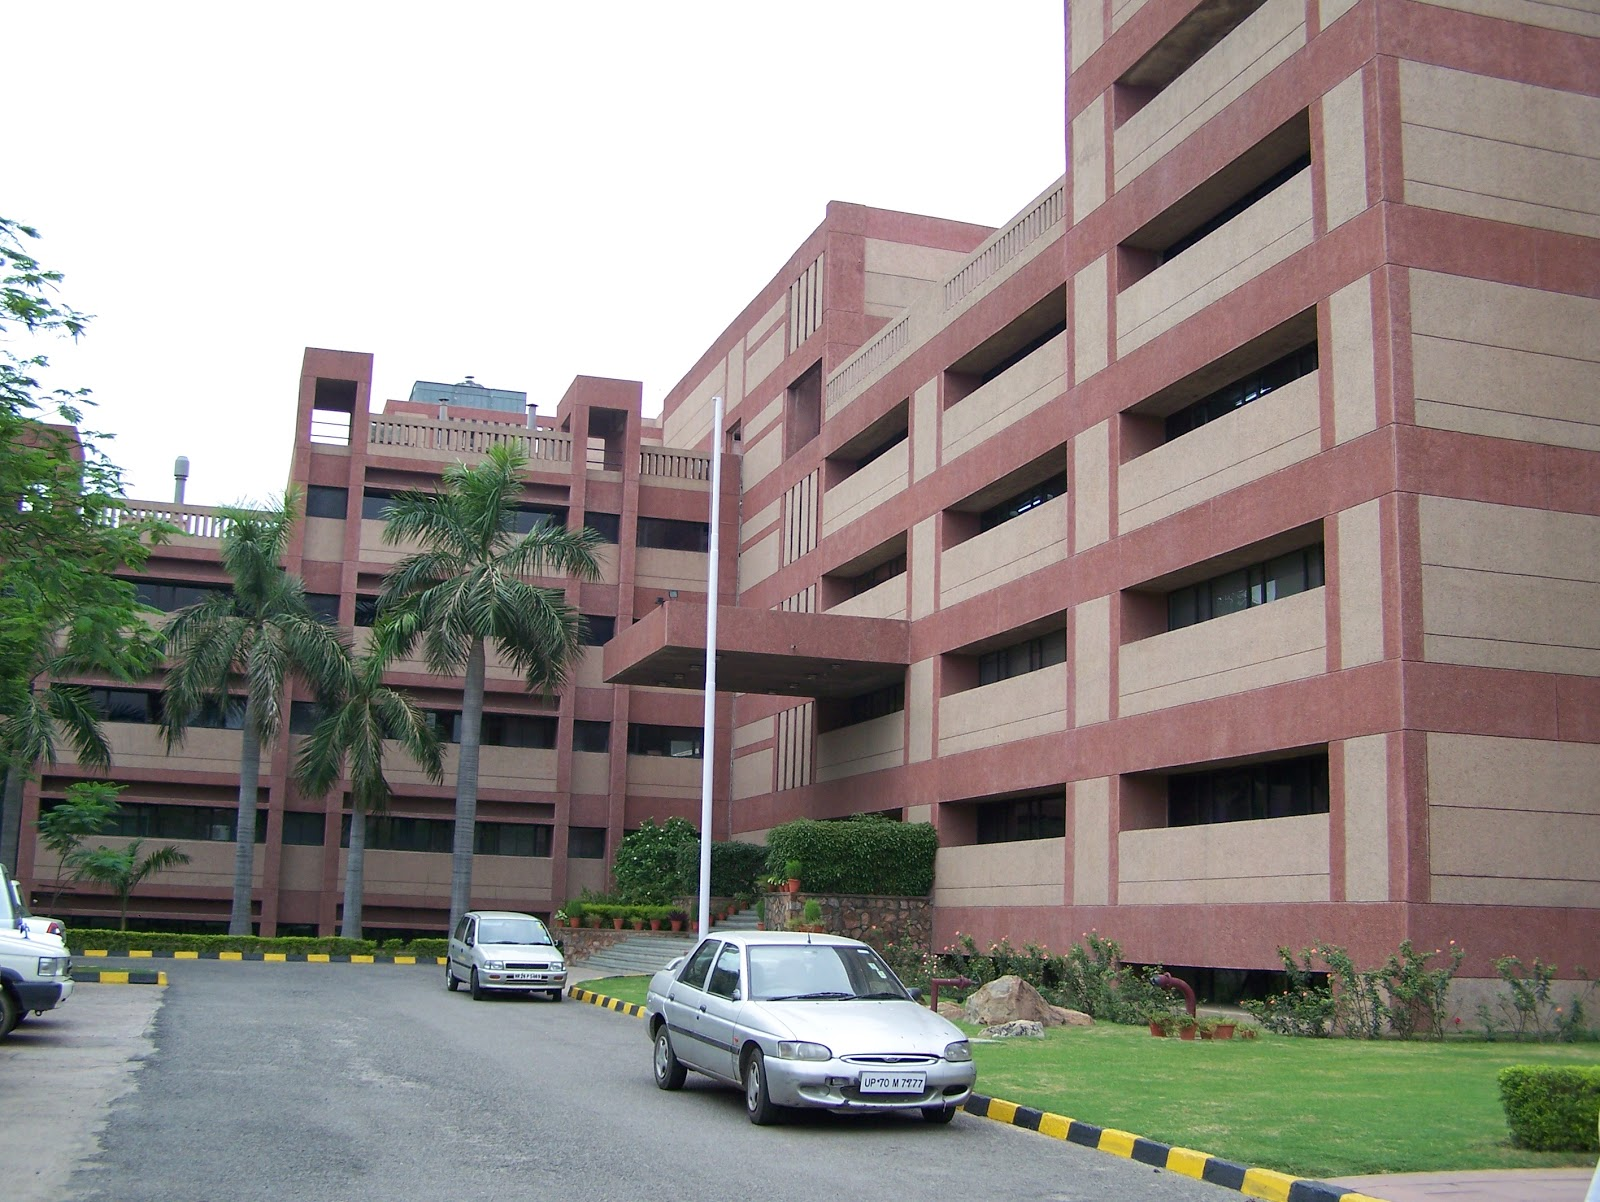 indias best research universities Top 100 universities in india 2017: mhrd updated on: apr 4, 2017,  research, professional practice & collaborative performance (rpc)  we have explained in detail the top 10 universities in india and towards the end of the article we have a table with information on the top 100 universities in india.